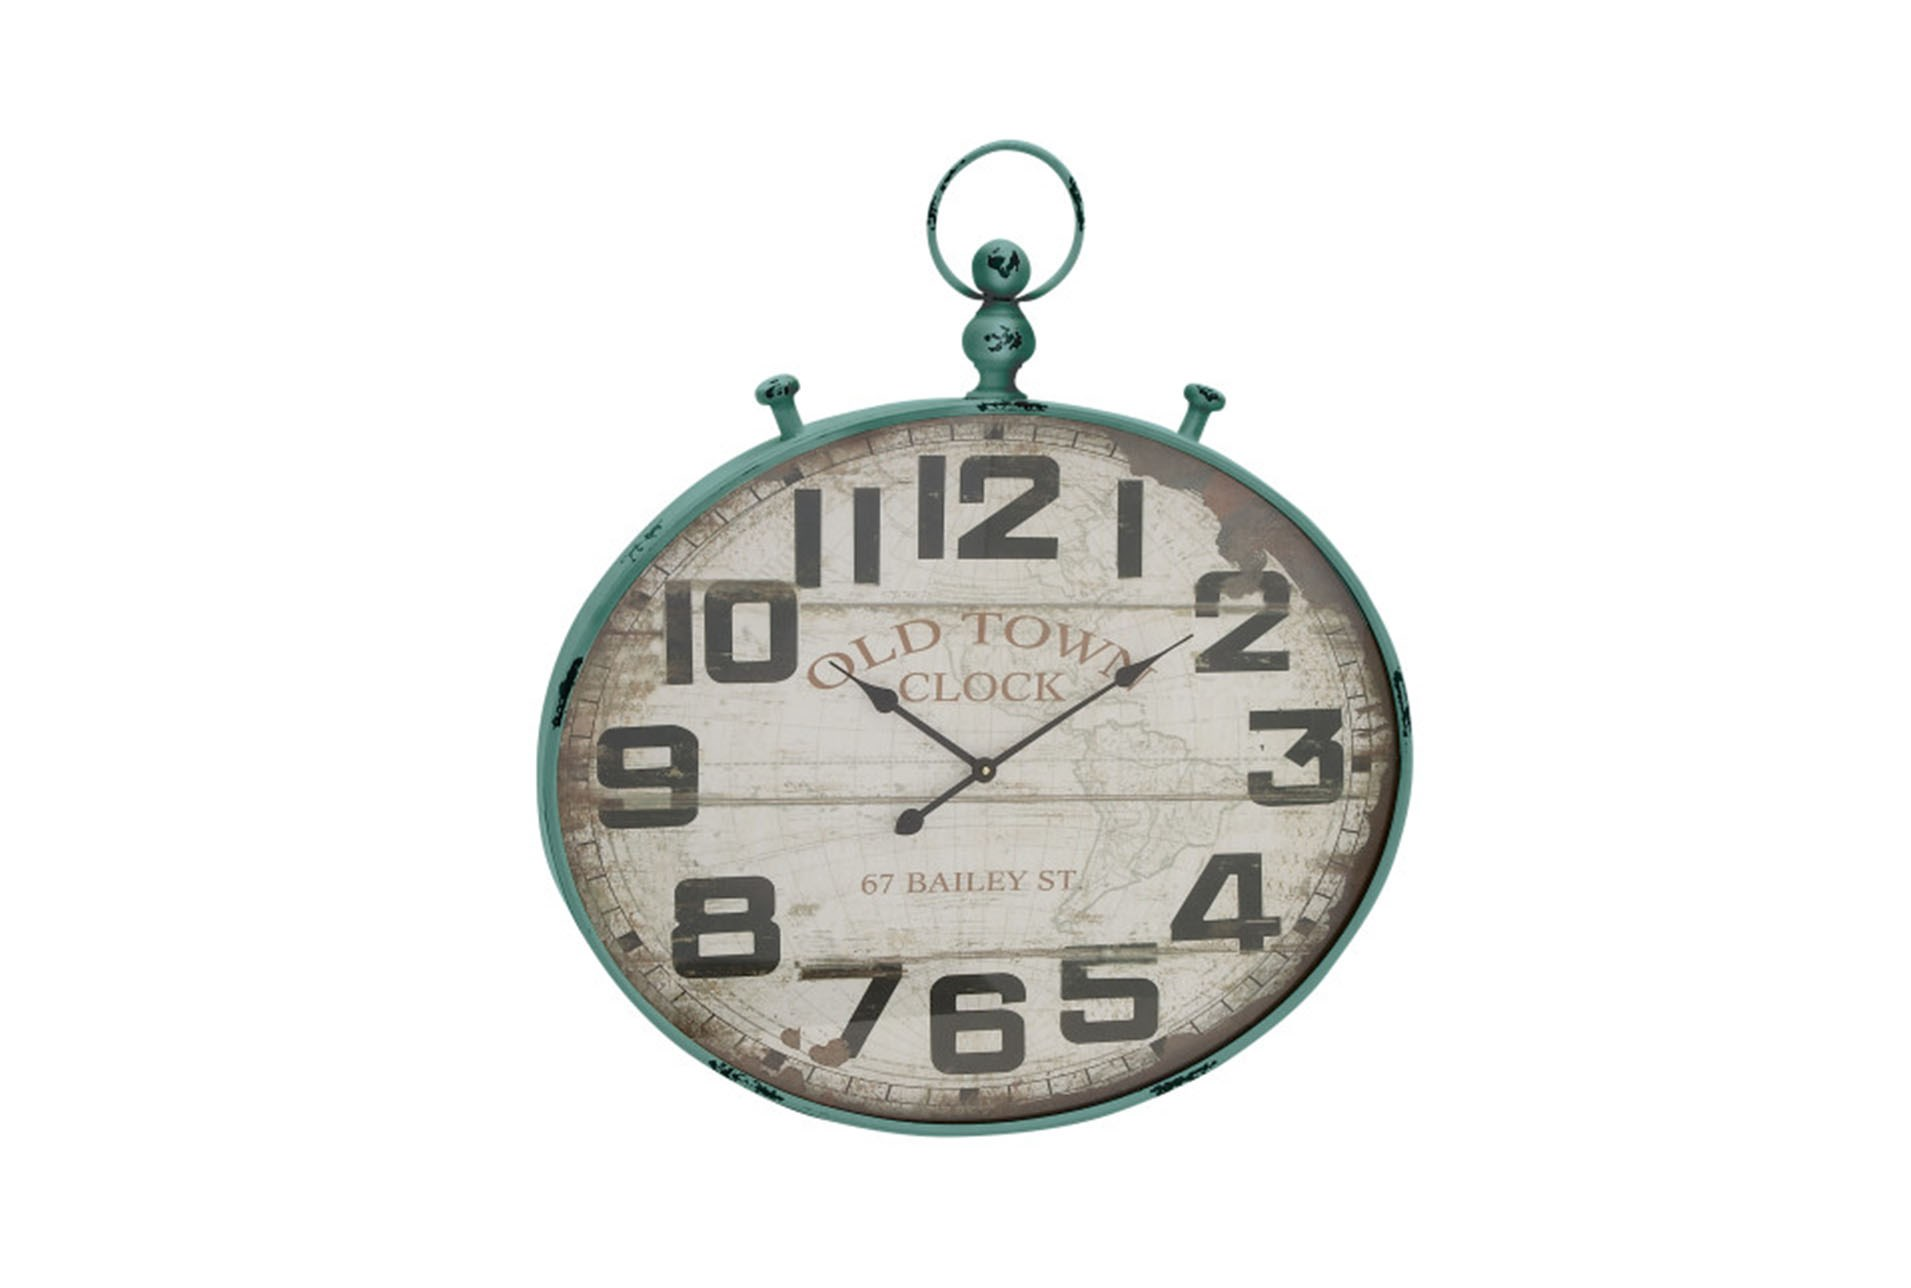 36 Inch Old Town Green Wall Clock Qty 1 Has Been Successfully Added To Your Cart